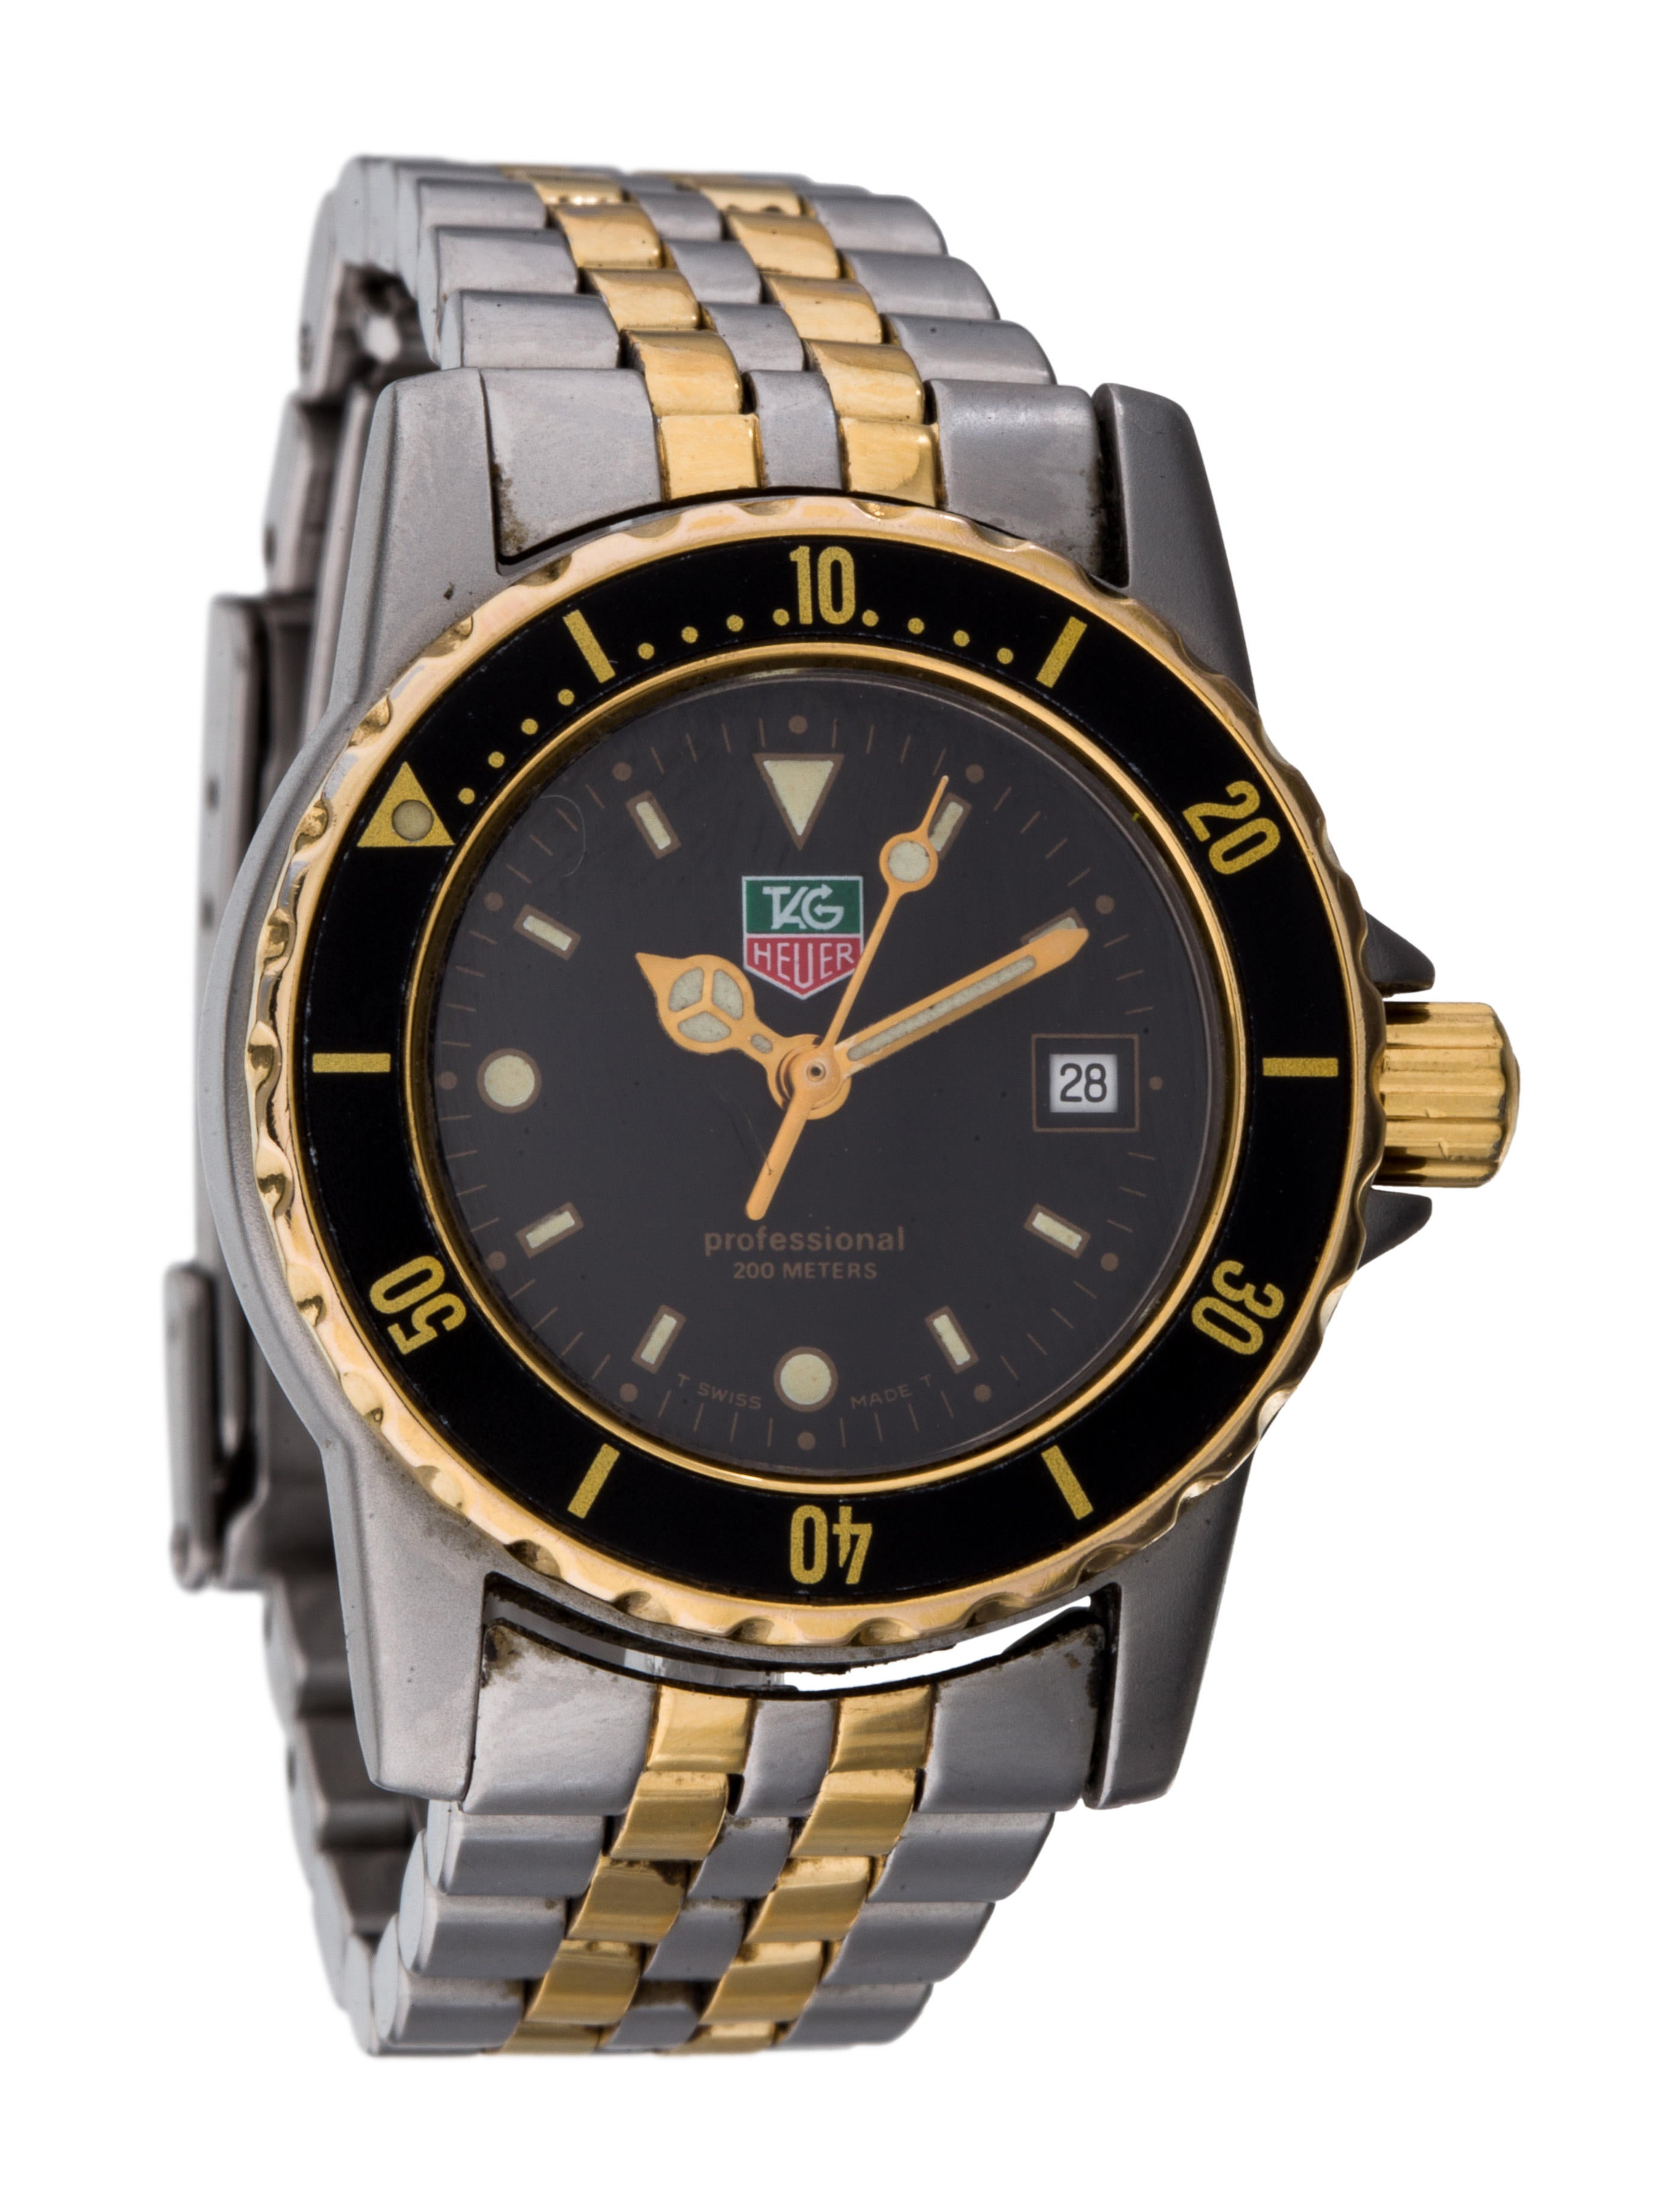 tag heuer watches professional 200 meters. Black Bedroom Furniture Sets. Home Design Ideas